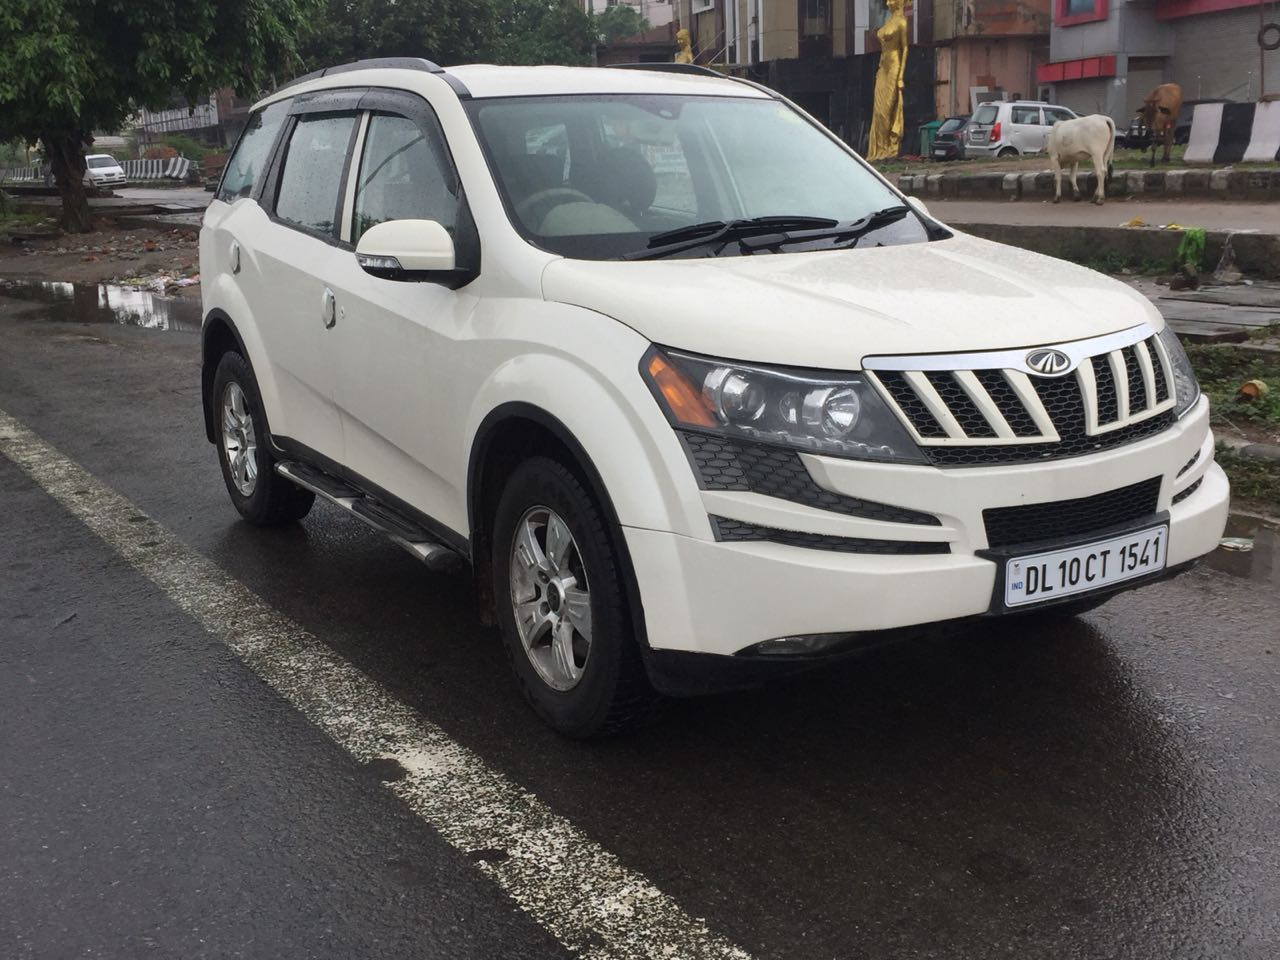 Secondhand XUV-500 W-8 car in Dwarka and Uttam Nagar